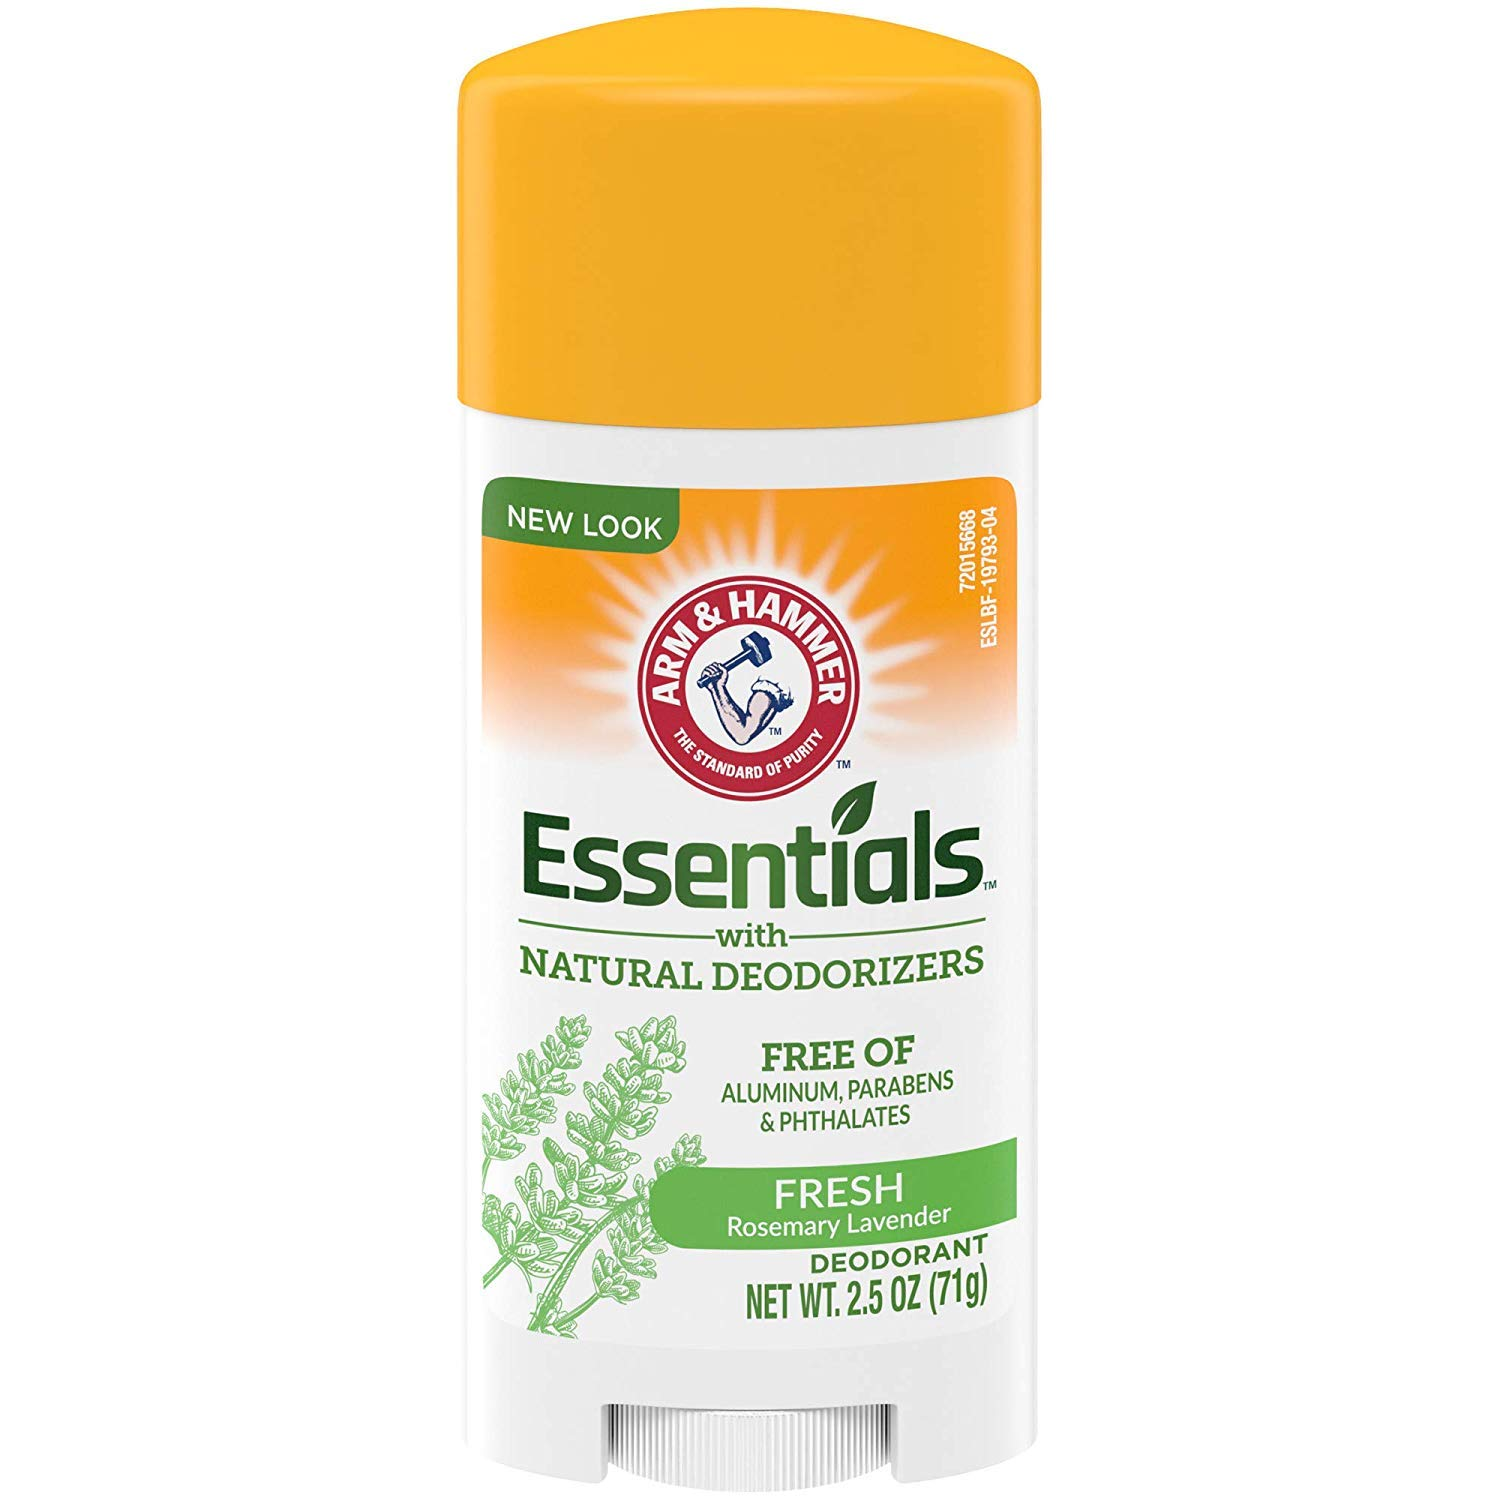 Arm & Hammer Essentials Natural Deodorant, Fresh - 2.5 oz - 2 pk